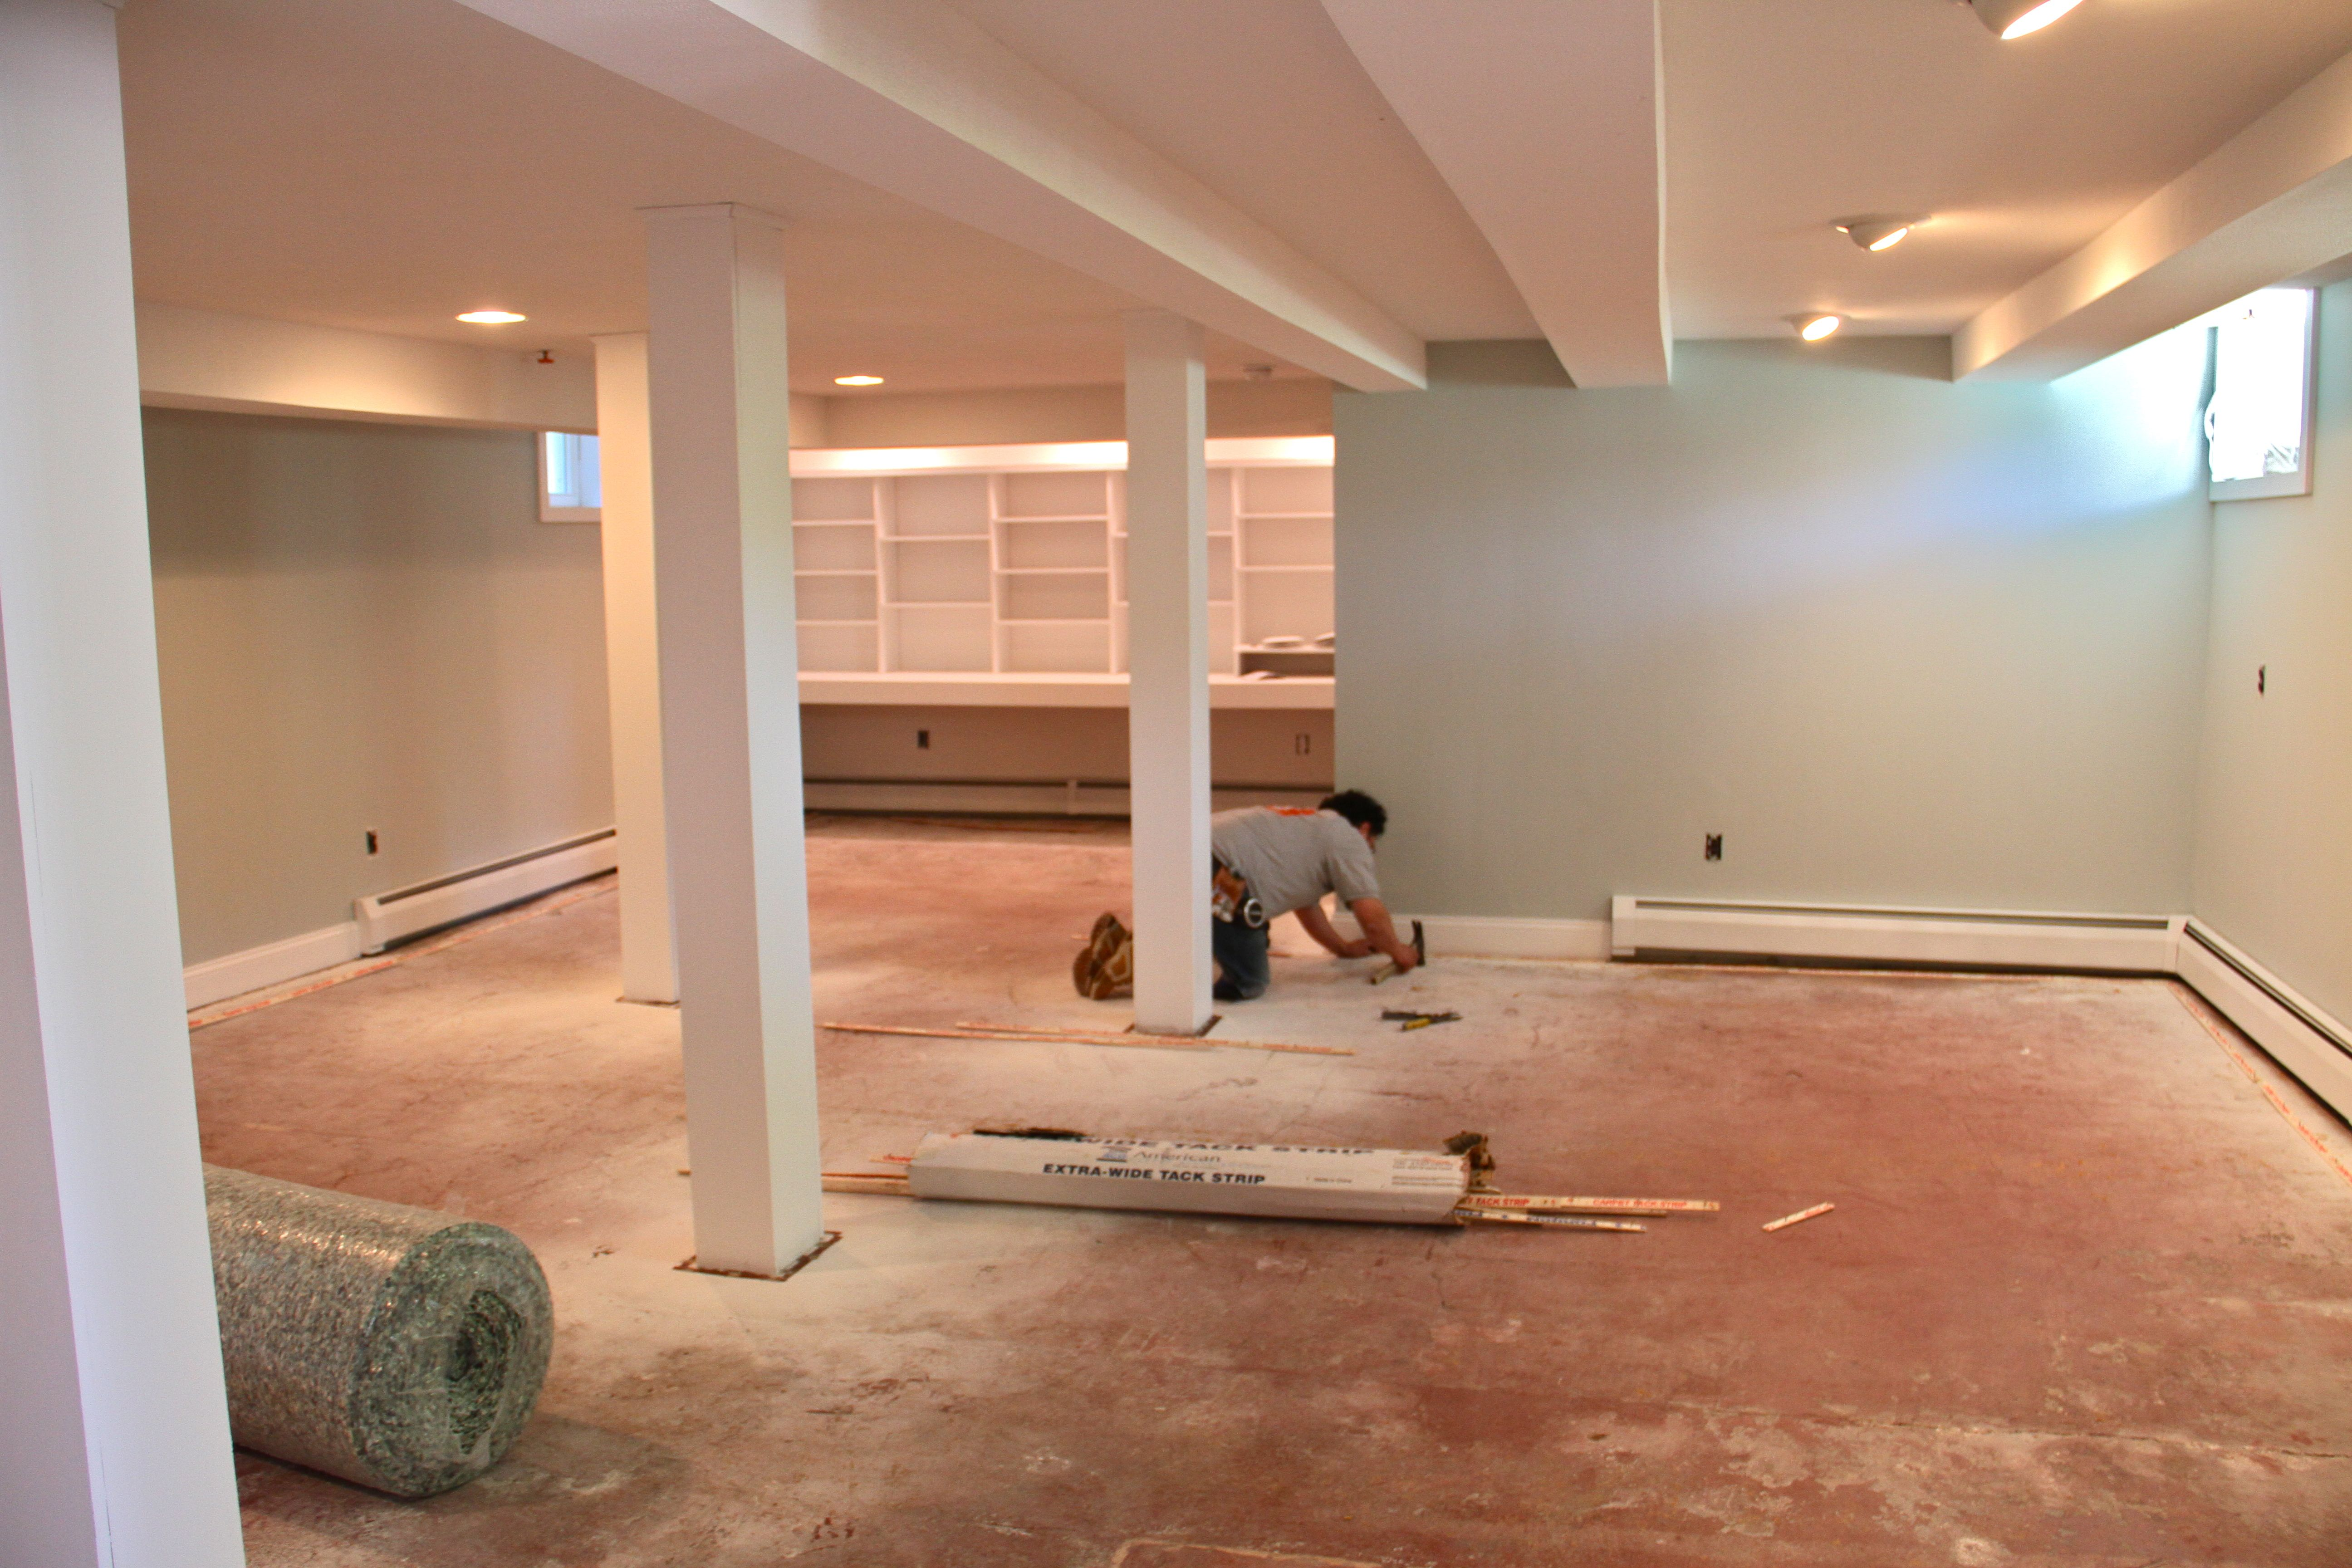 DURING: Believe it or not, this space is about 800 square feet.